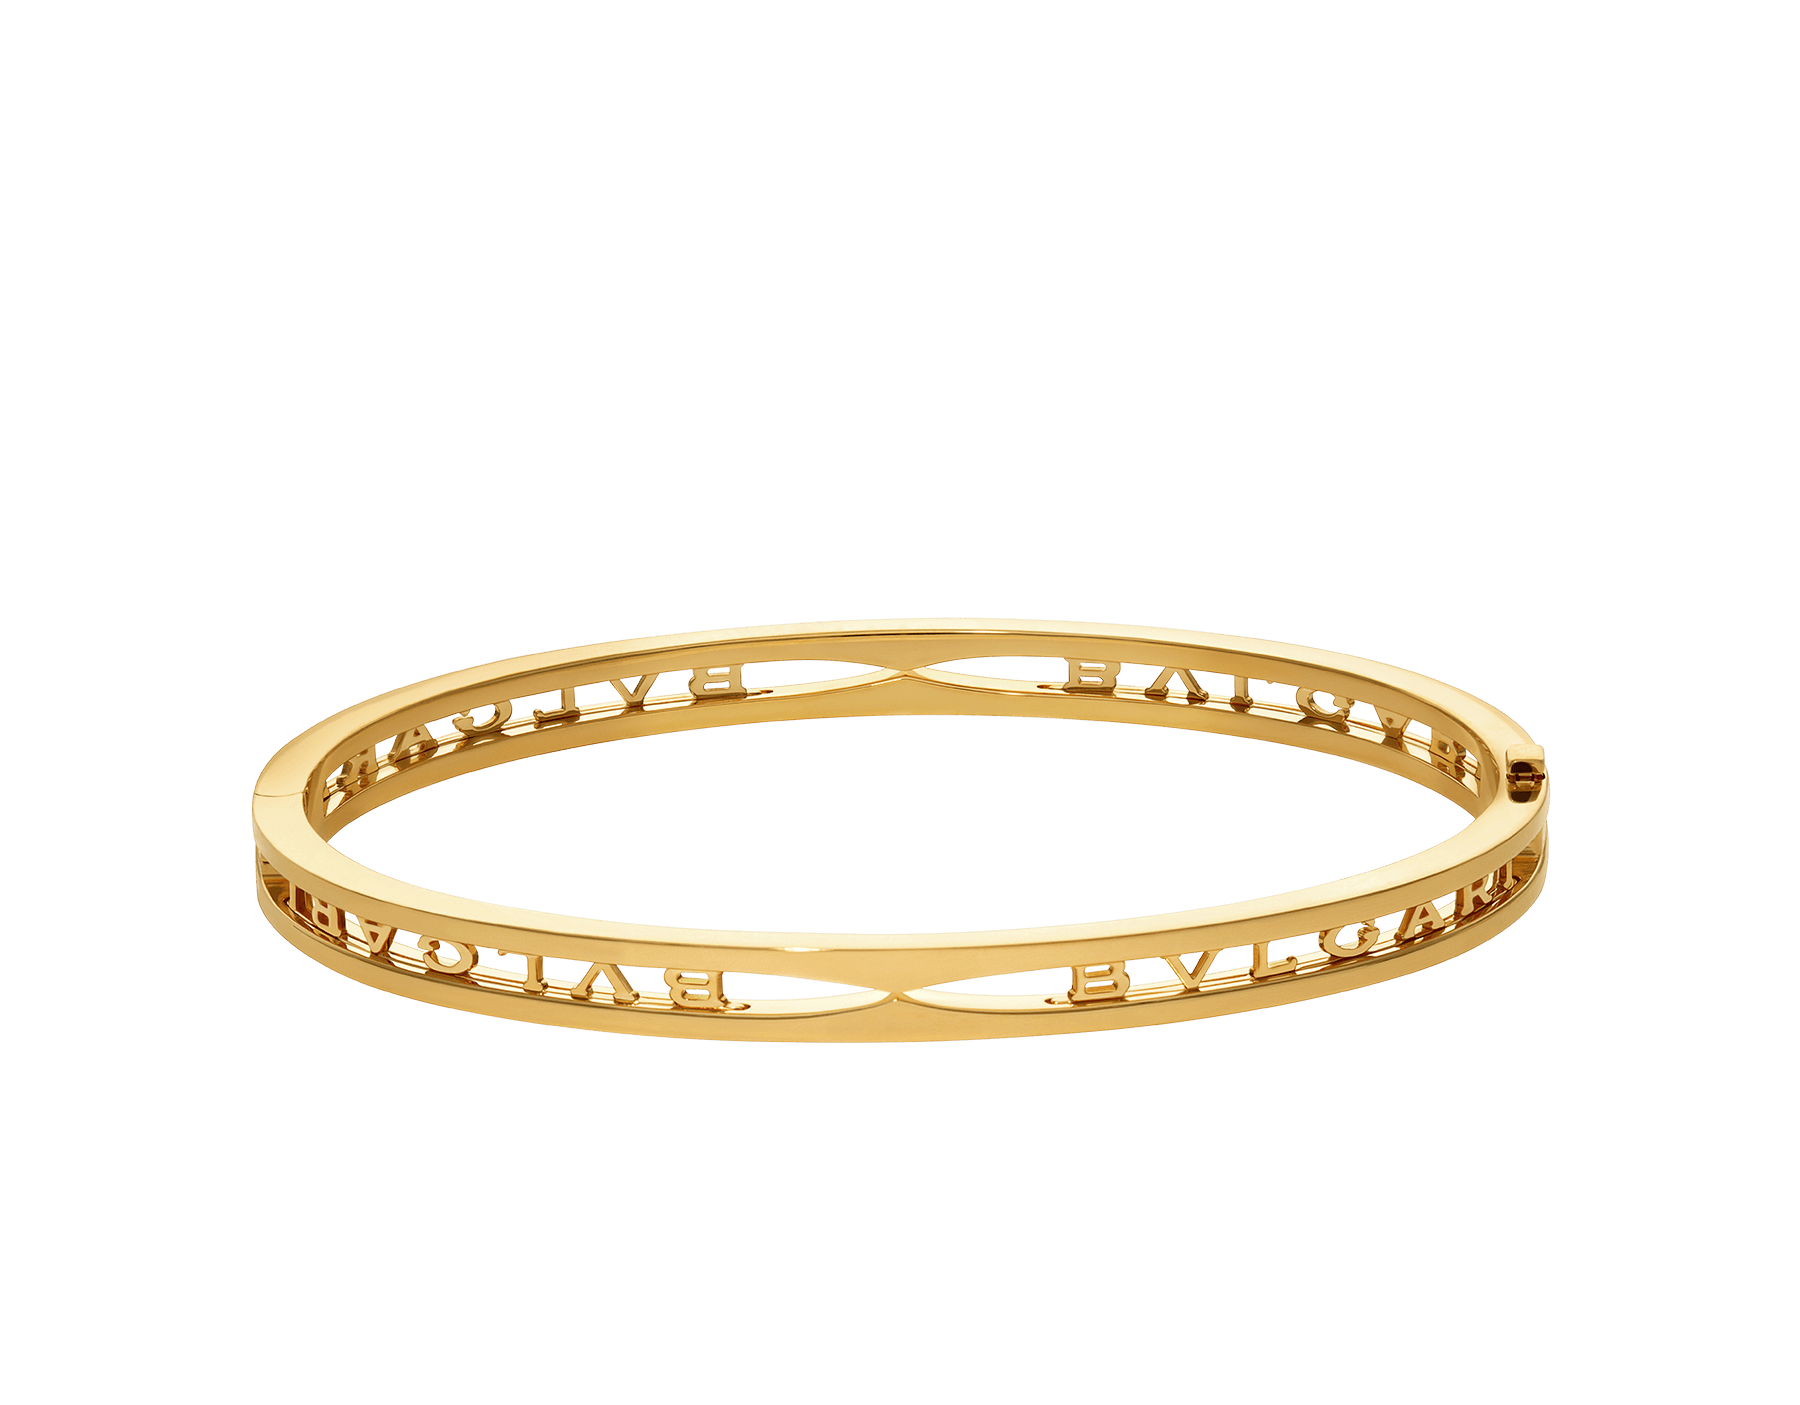 B.zero1 18 kt yellow gold bangle bracelet with BVLGARI logo on the spiral BR858724 image 2